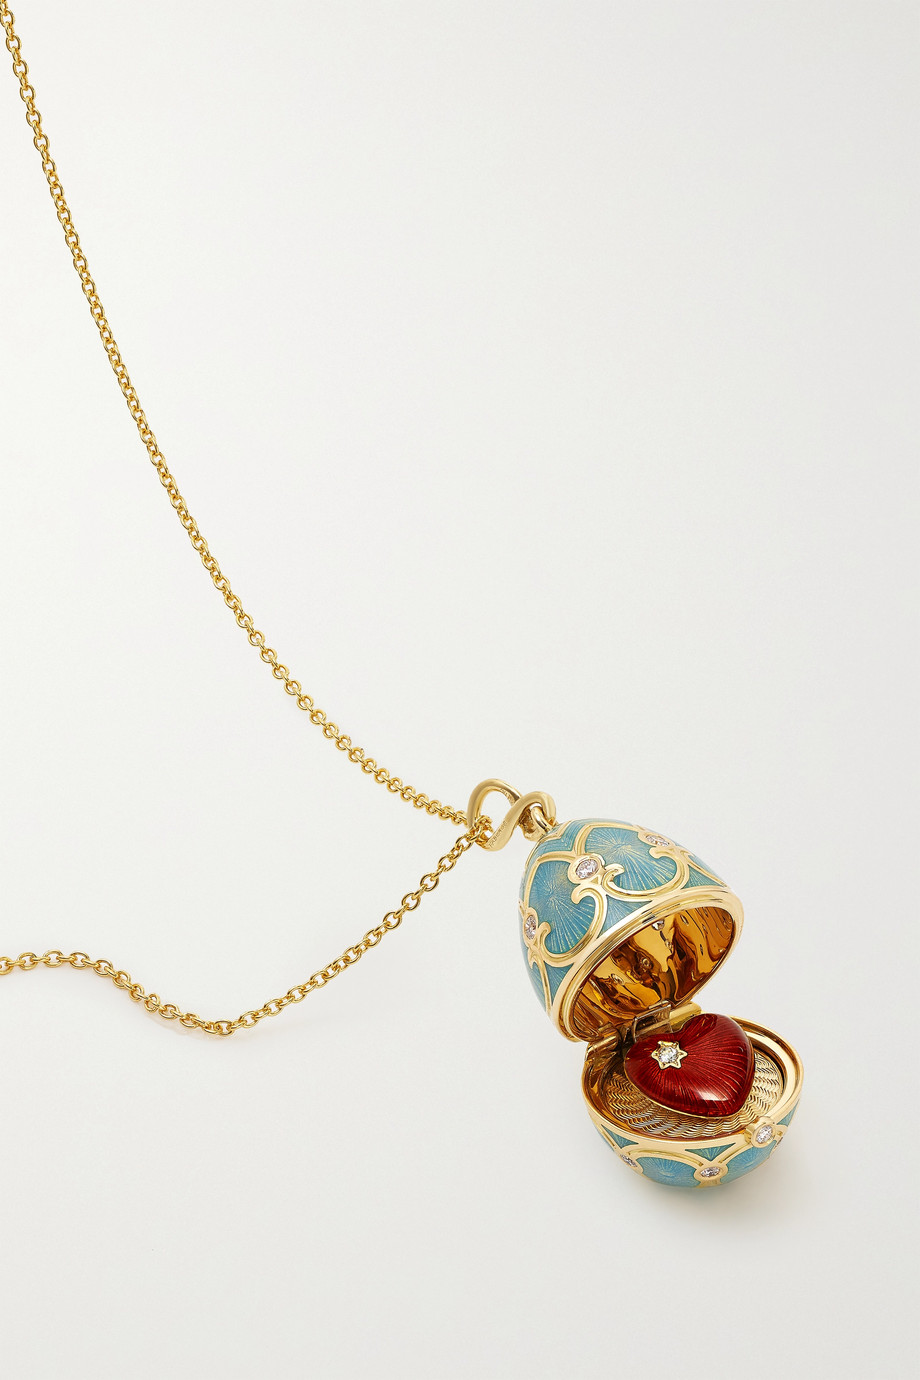 FABERGÉ Heritage 18-karat gold, enamel and diamond necklace